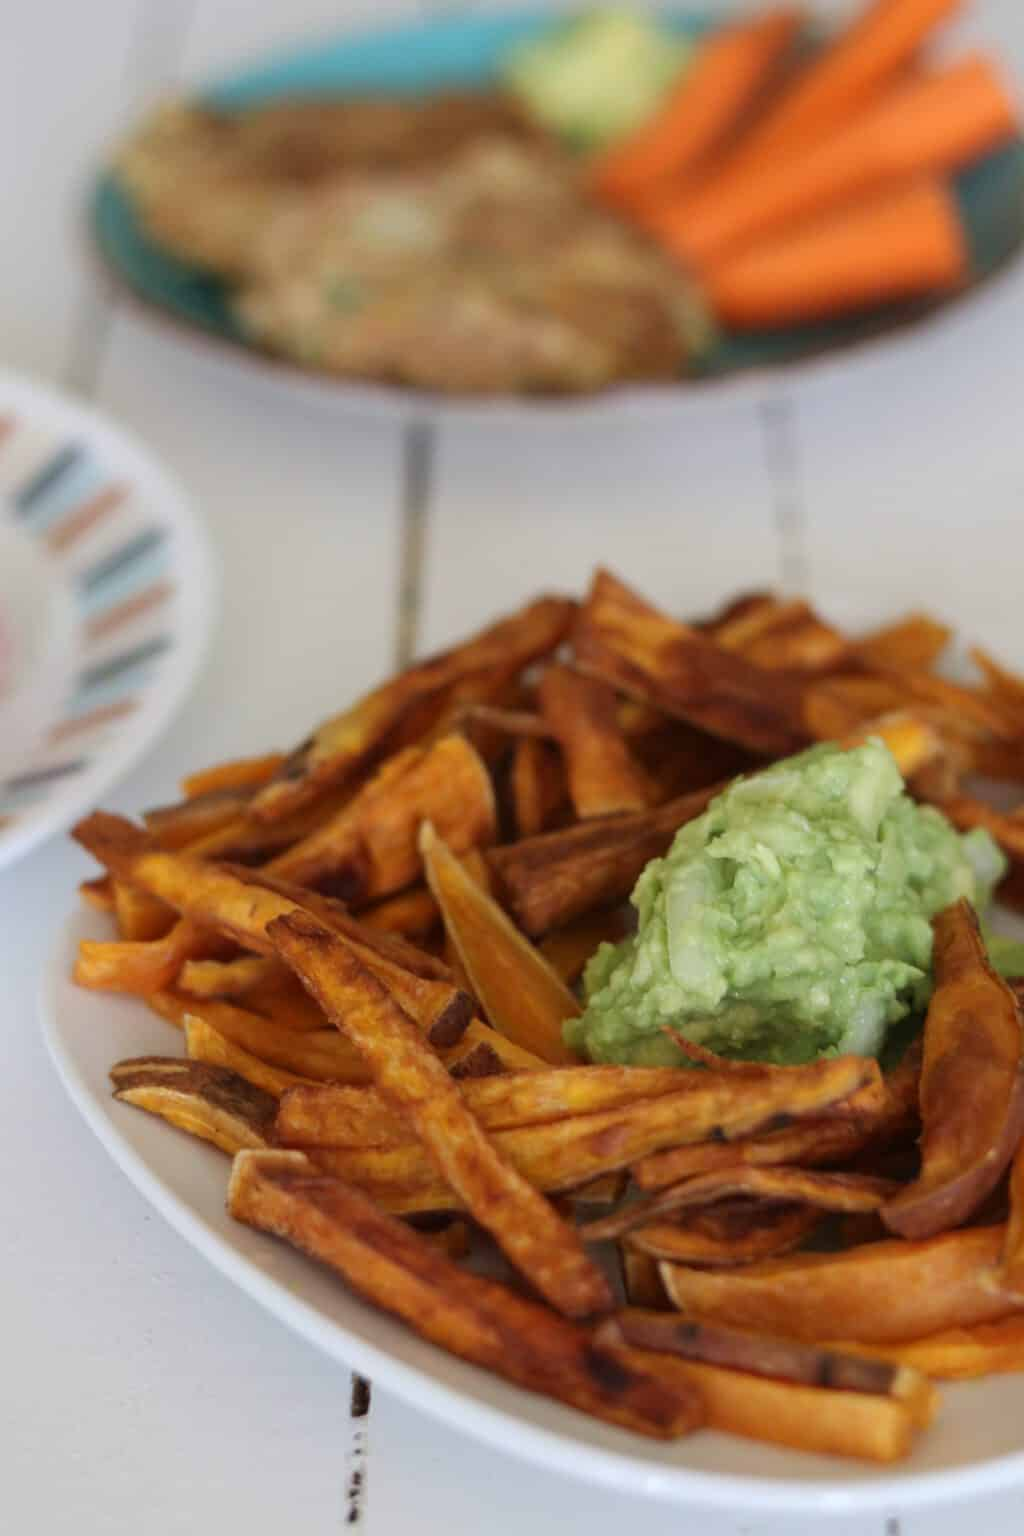 sweet potato fries and guacamole